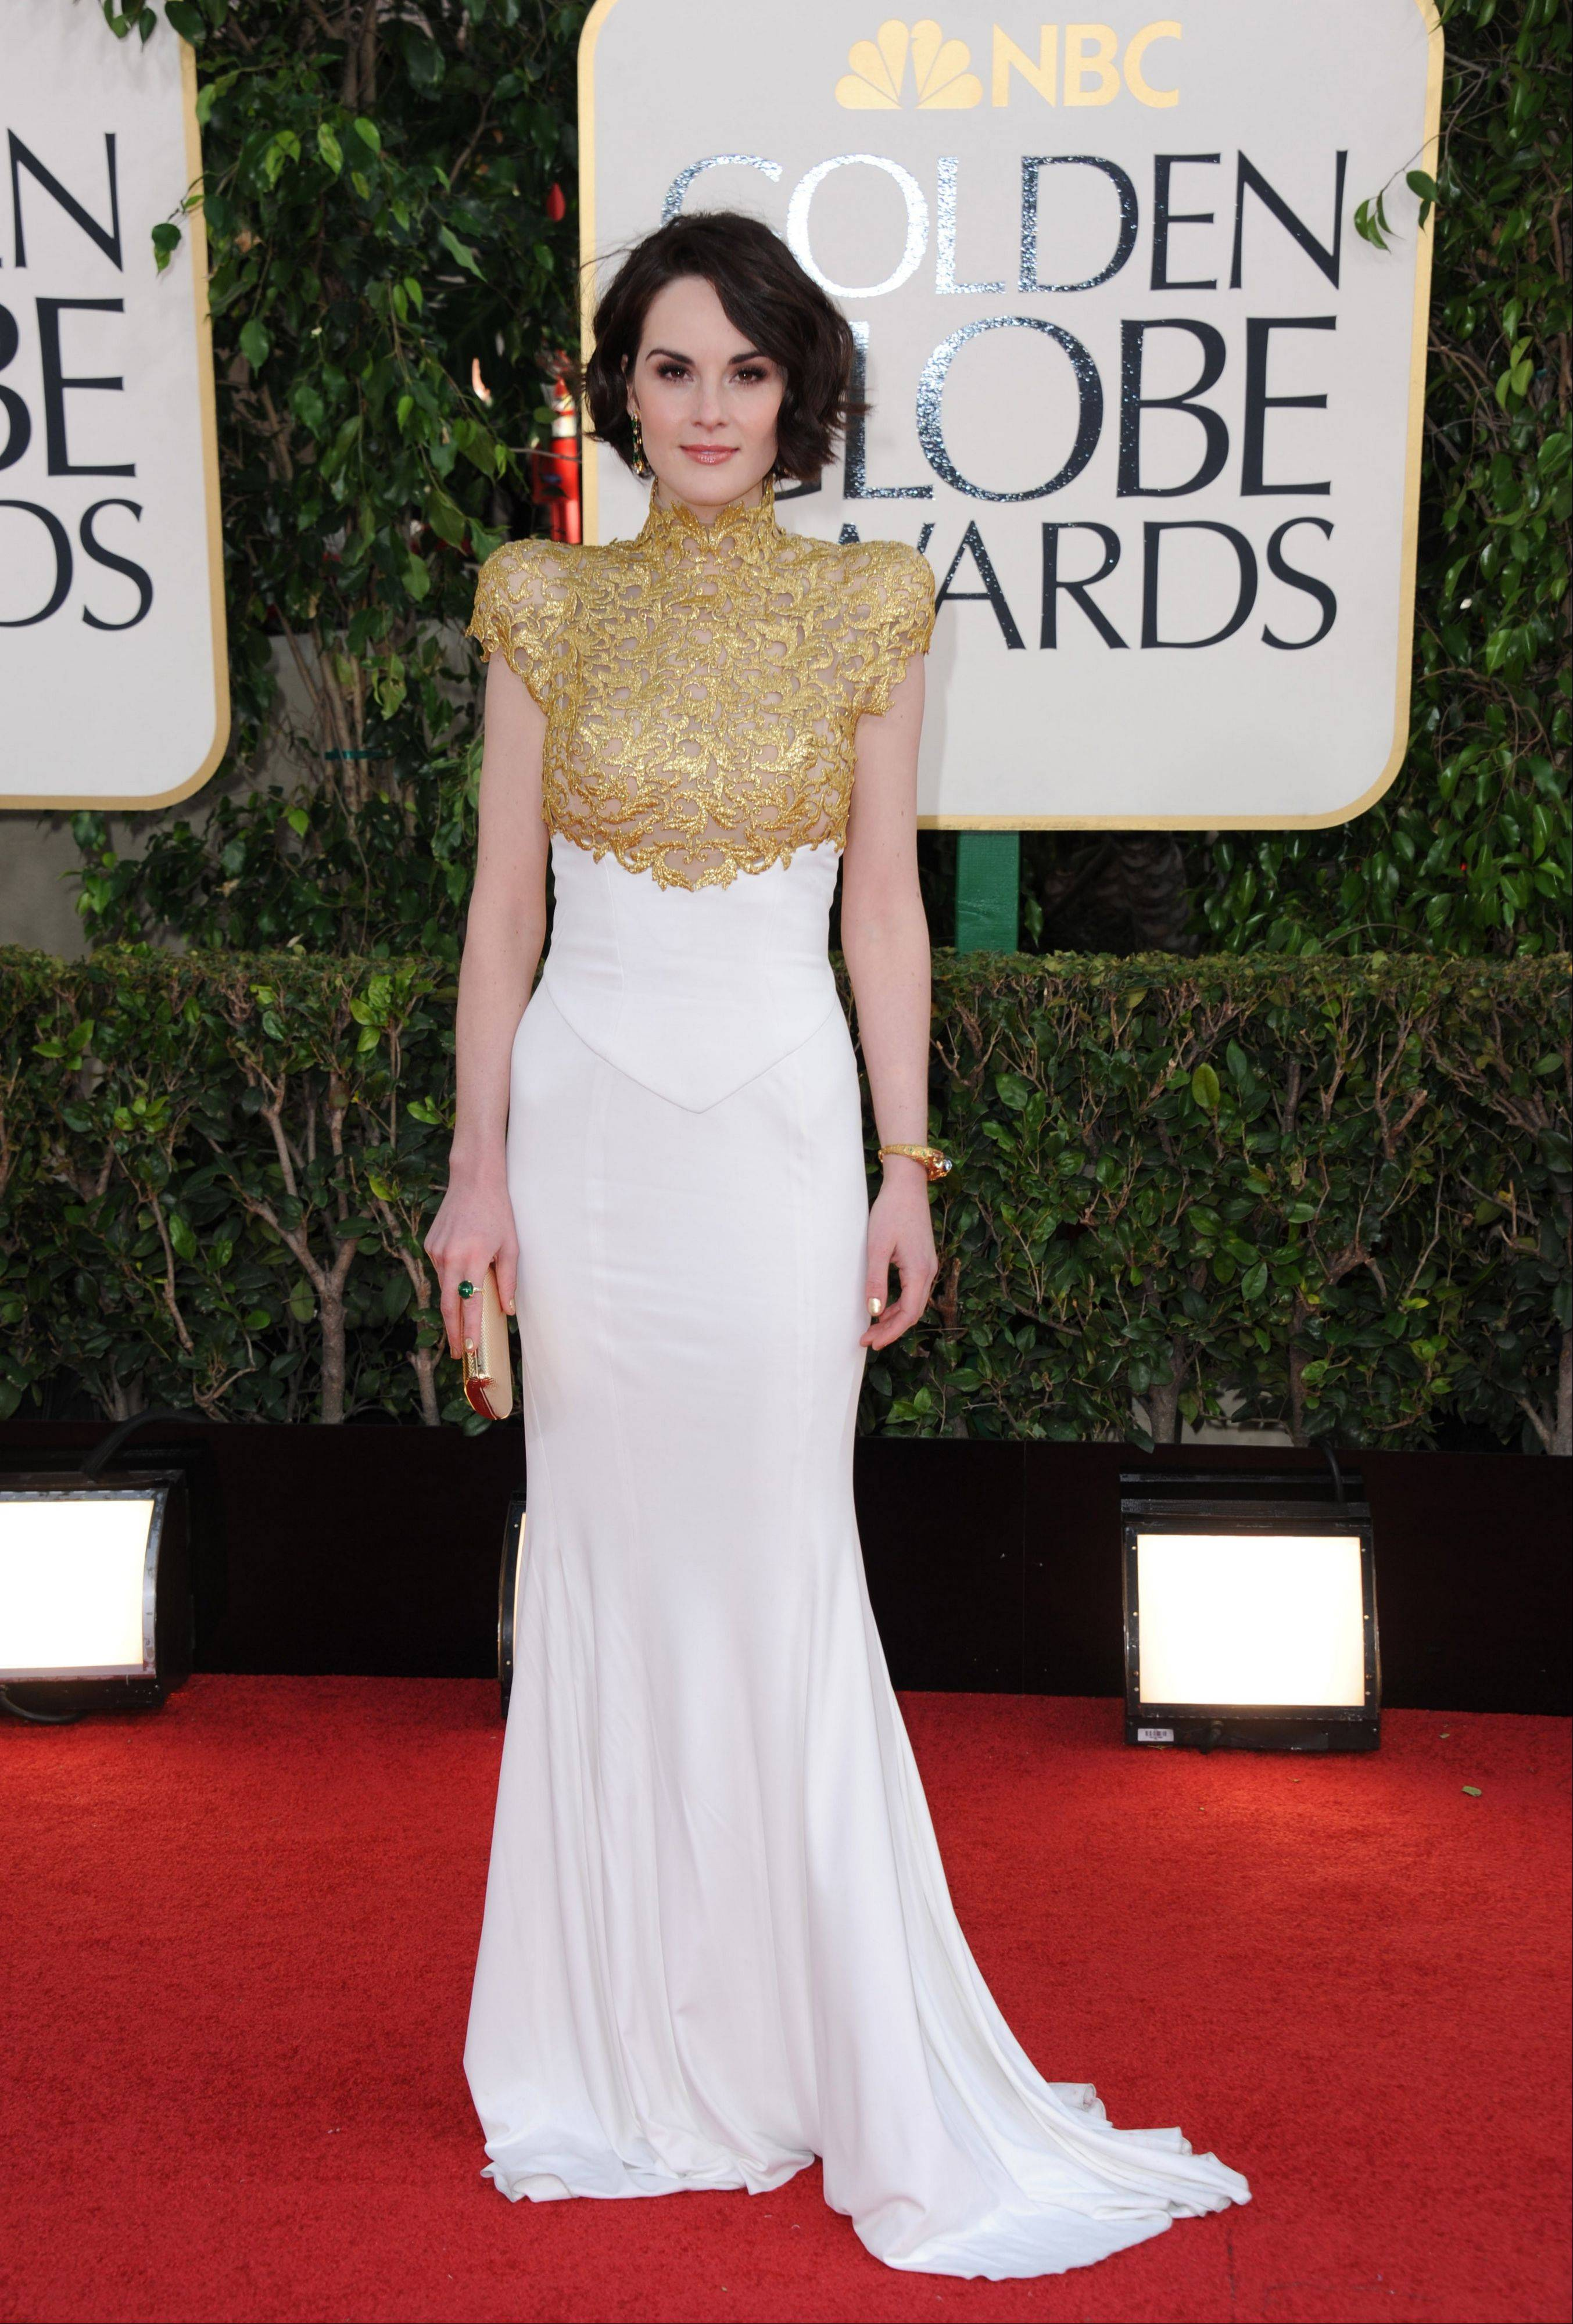 """Downton Abbey"" Actress Michelle Dockery arrives at the 70th Annual Golden Globe Awards at the Beverly Hilton Hotel on Sunday Jan. 13, 2013, in Beverly Hills, Calif."